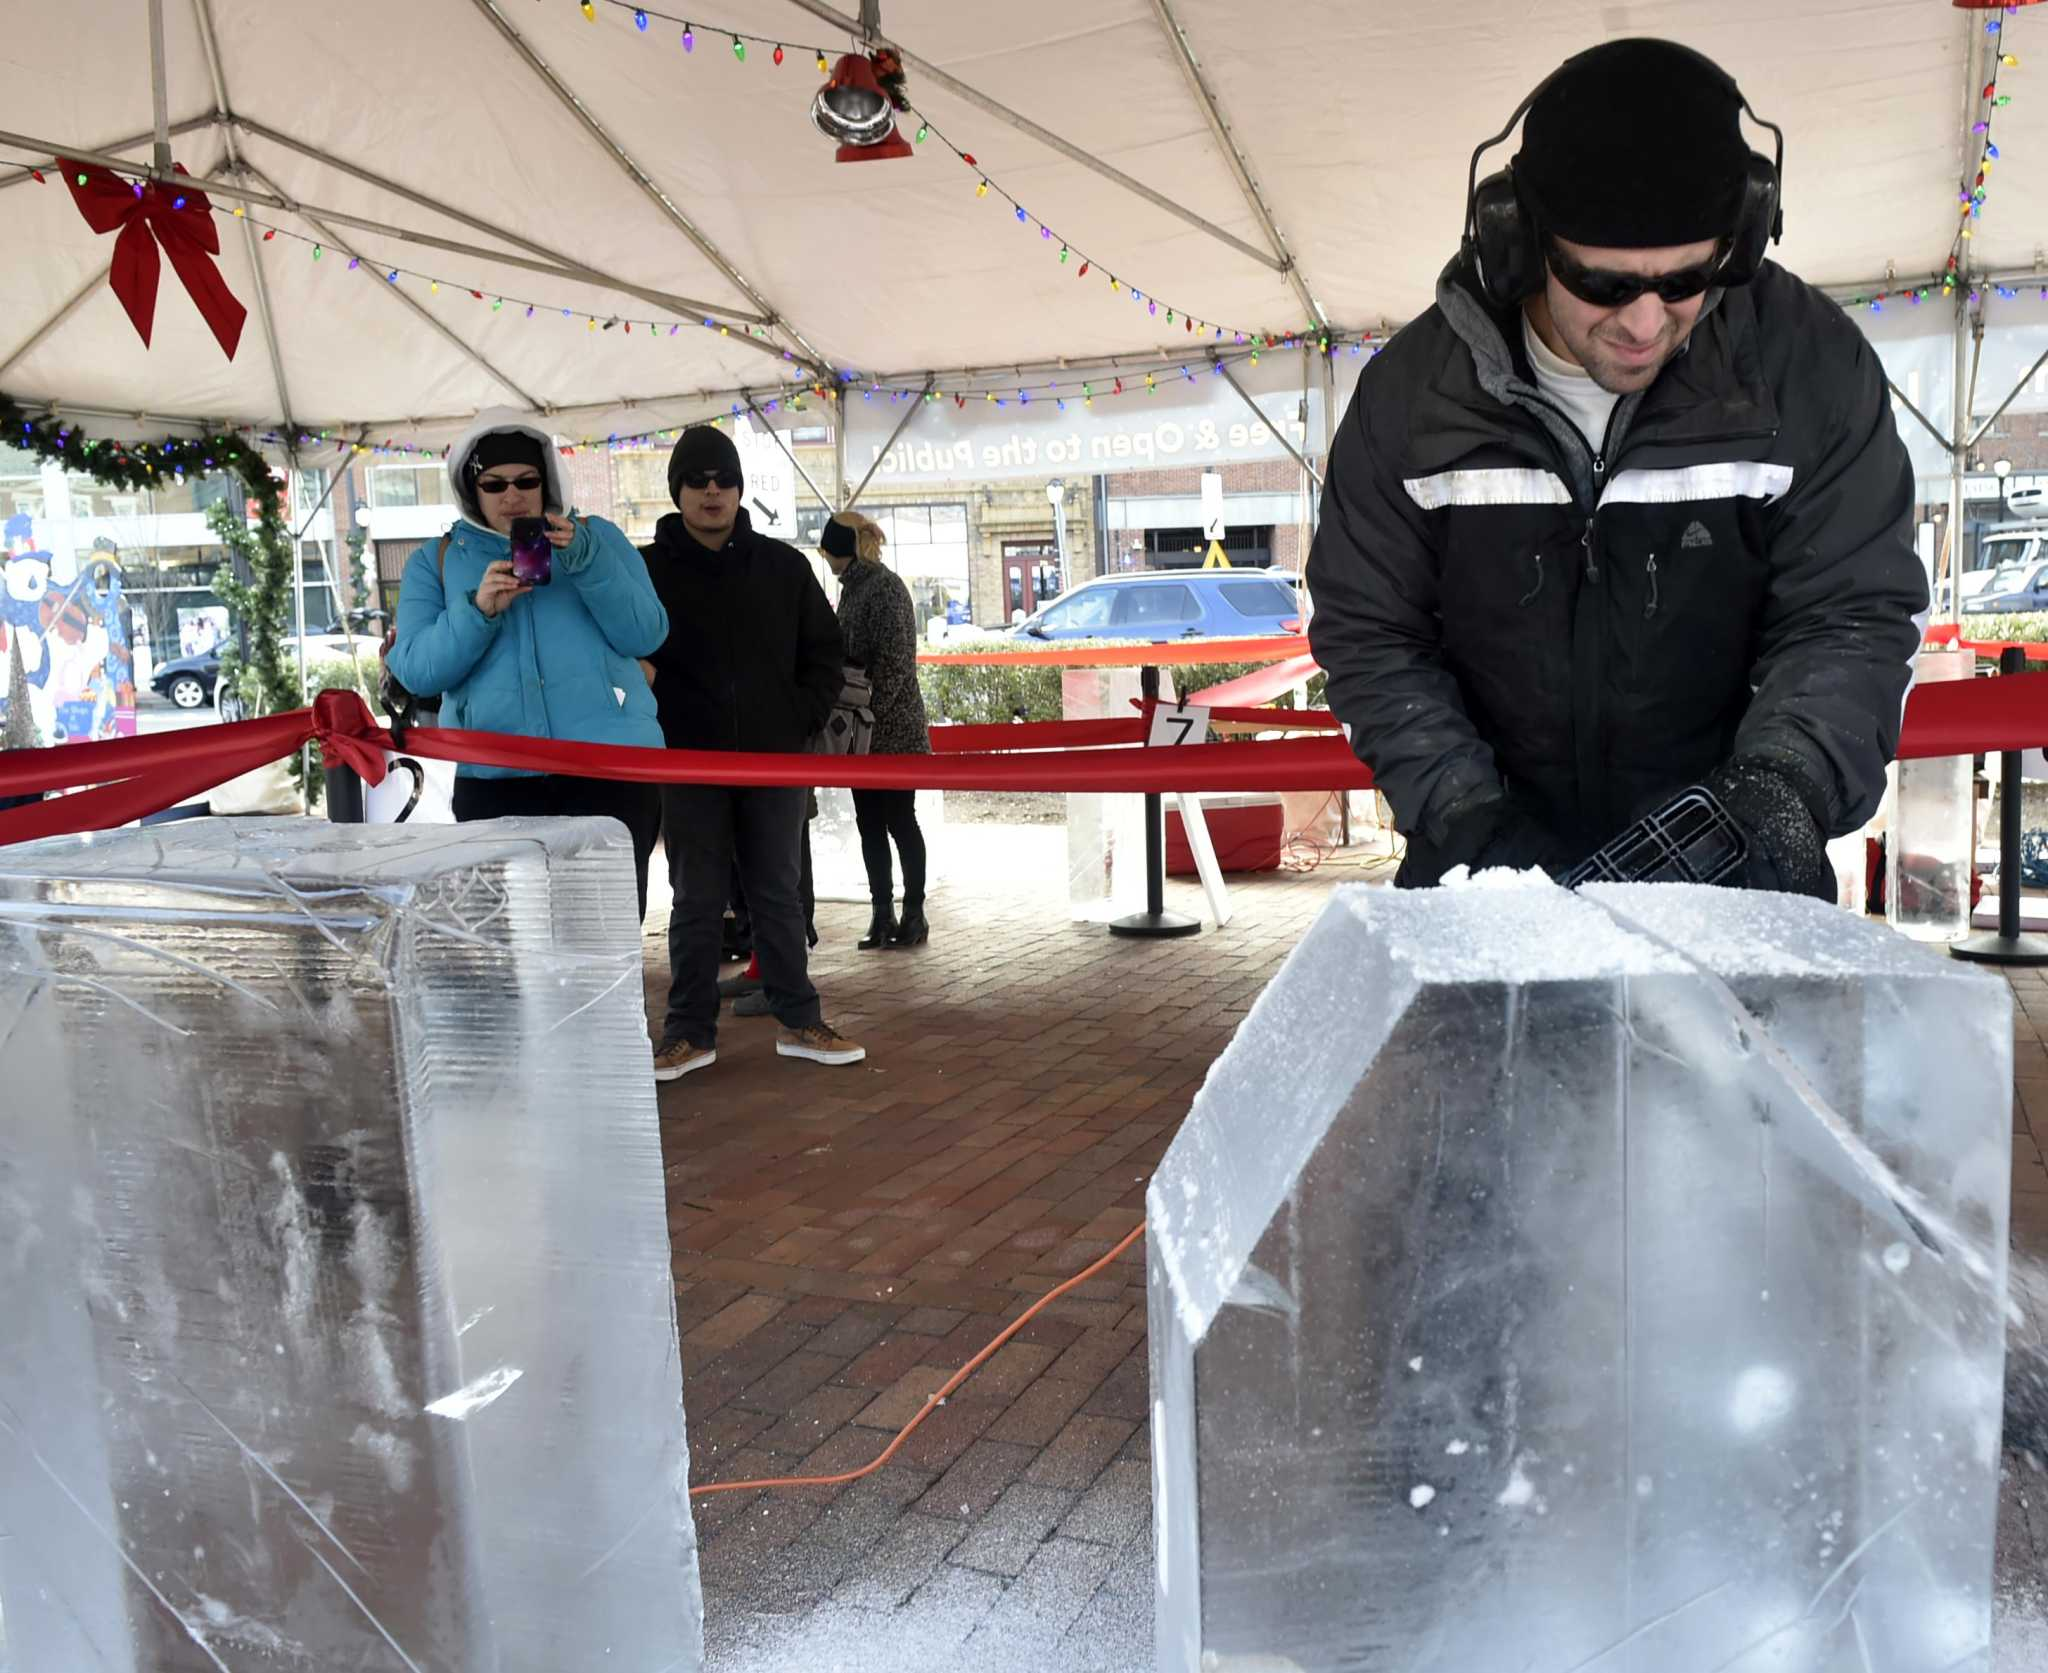 Got ice? This New Haven carving event has 2 tons and you're invited